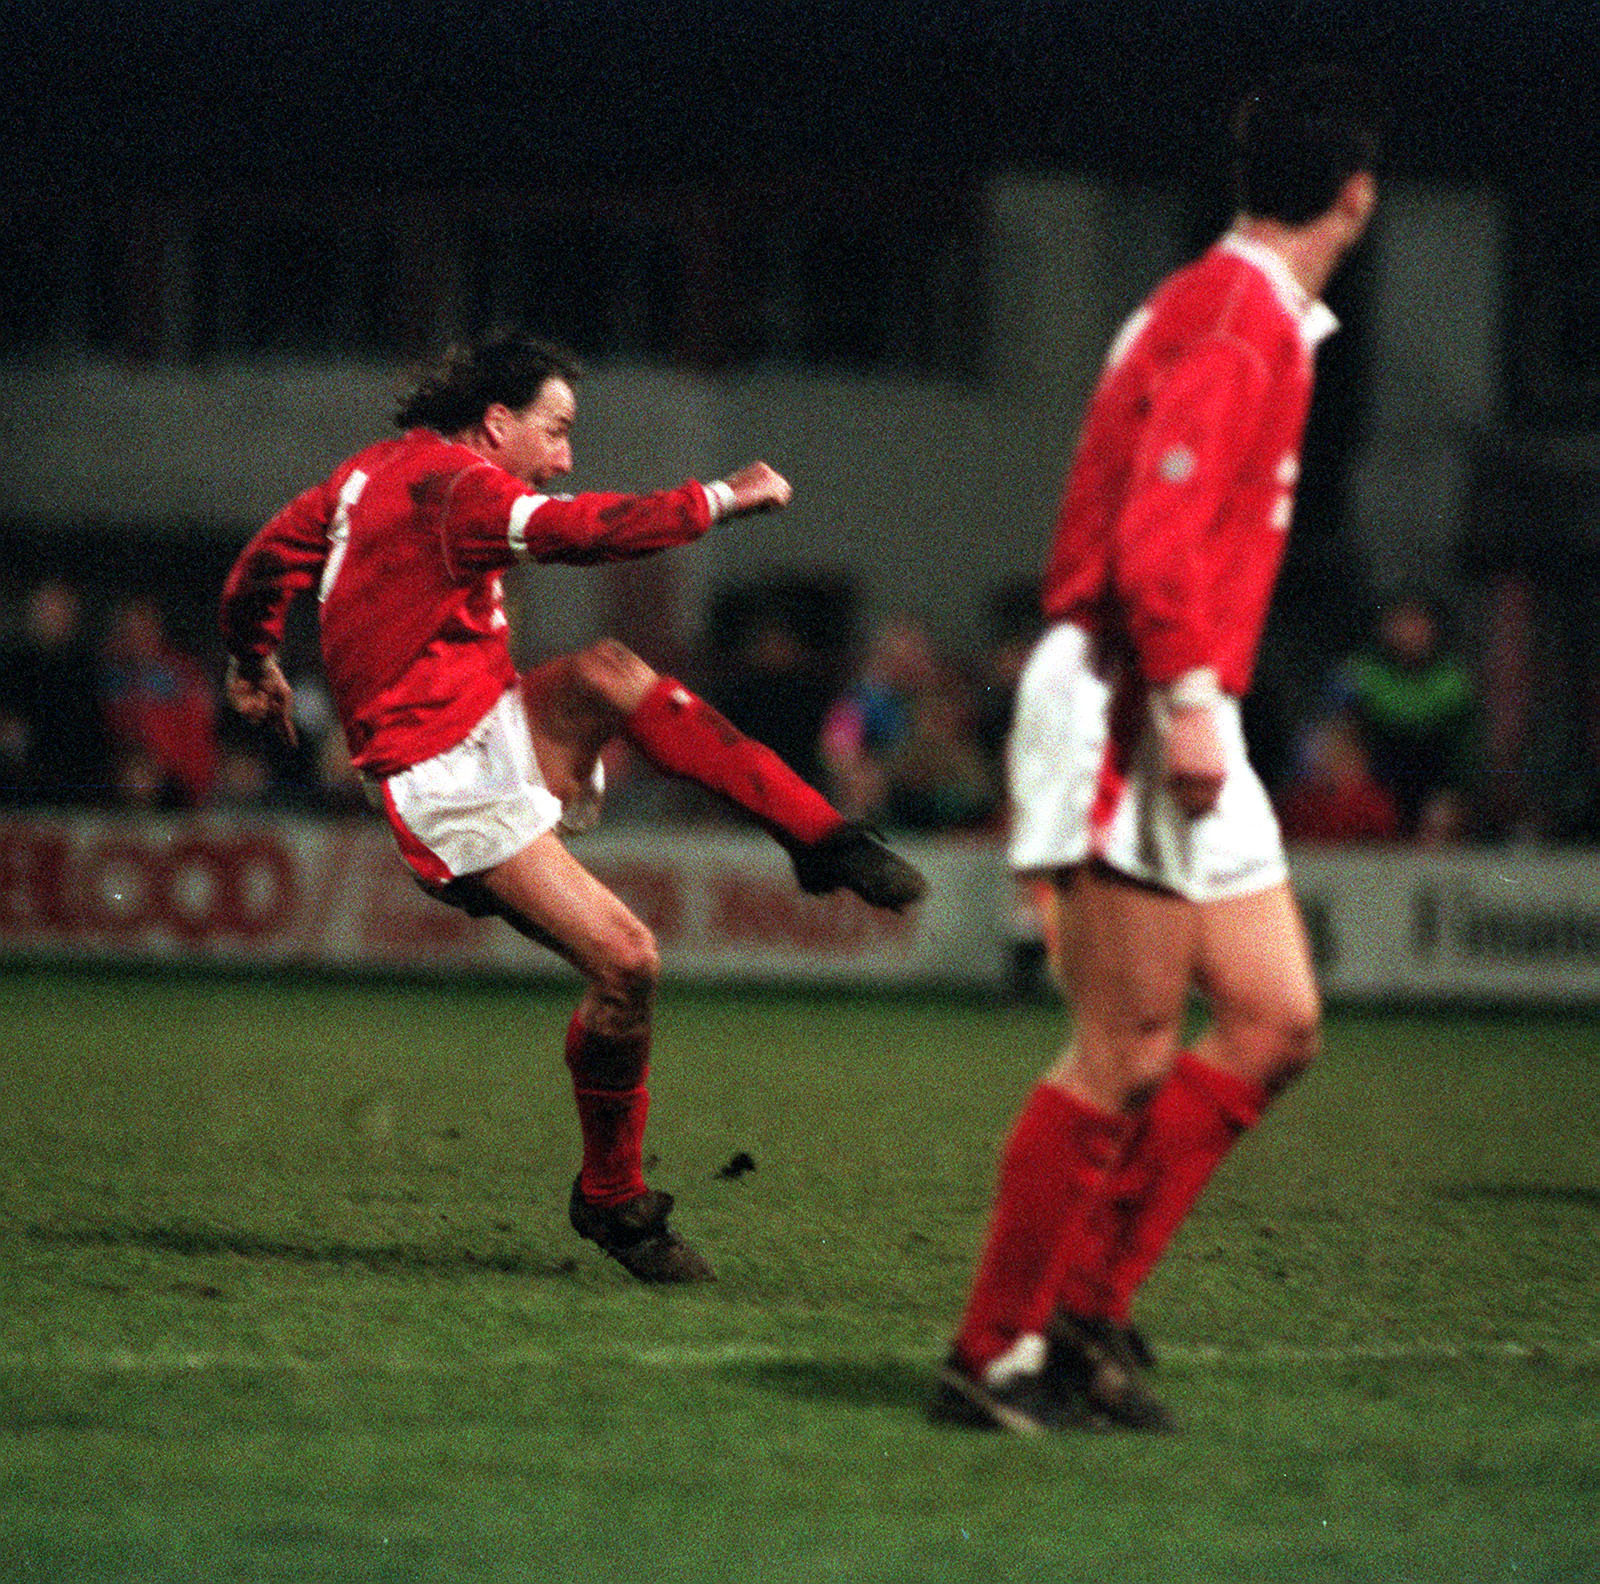 PA NEWS PHOTO 4/1/92 MICKEY THOMAS, WREXHAM CAPTAIN SCORES THE EQUALISER AGAINST ARSENAL IN THE F.A. CUP 3RD ROUND. THEY WON THE MATCH 2-1